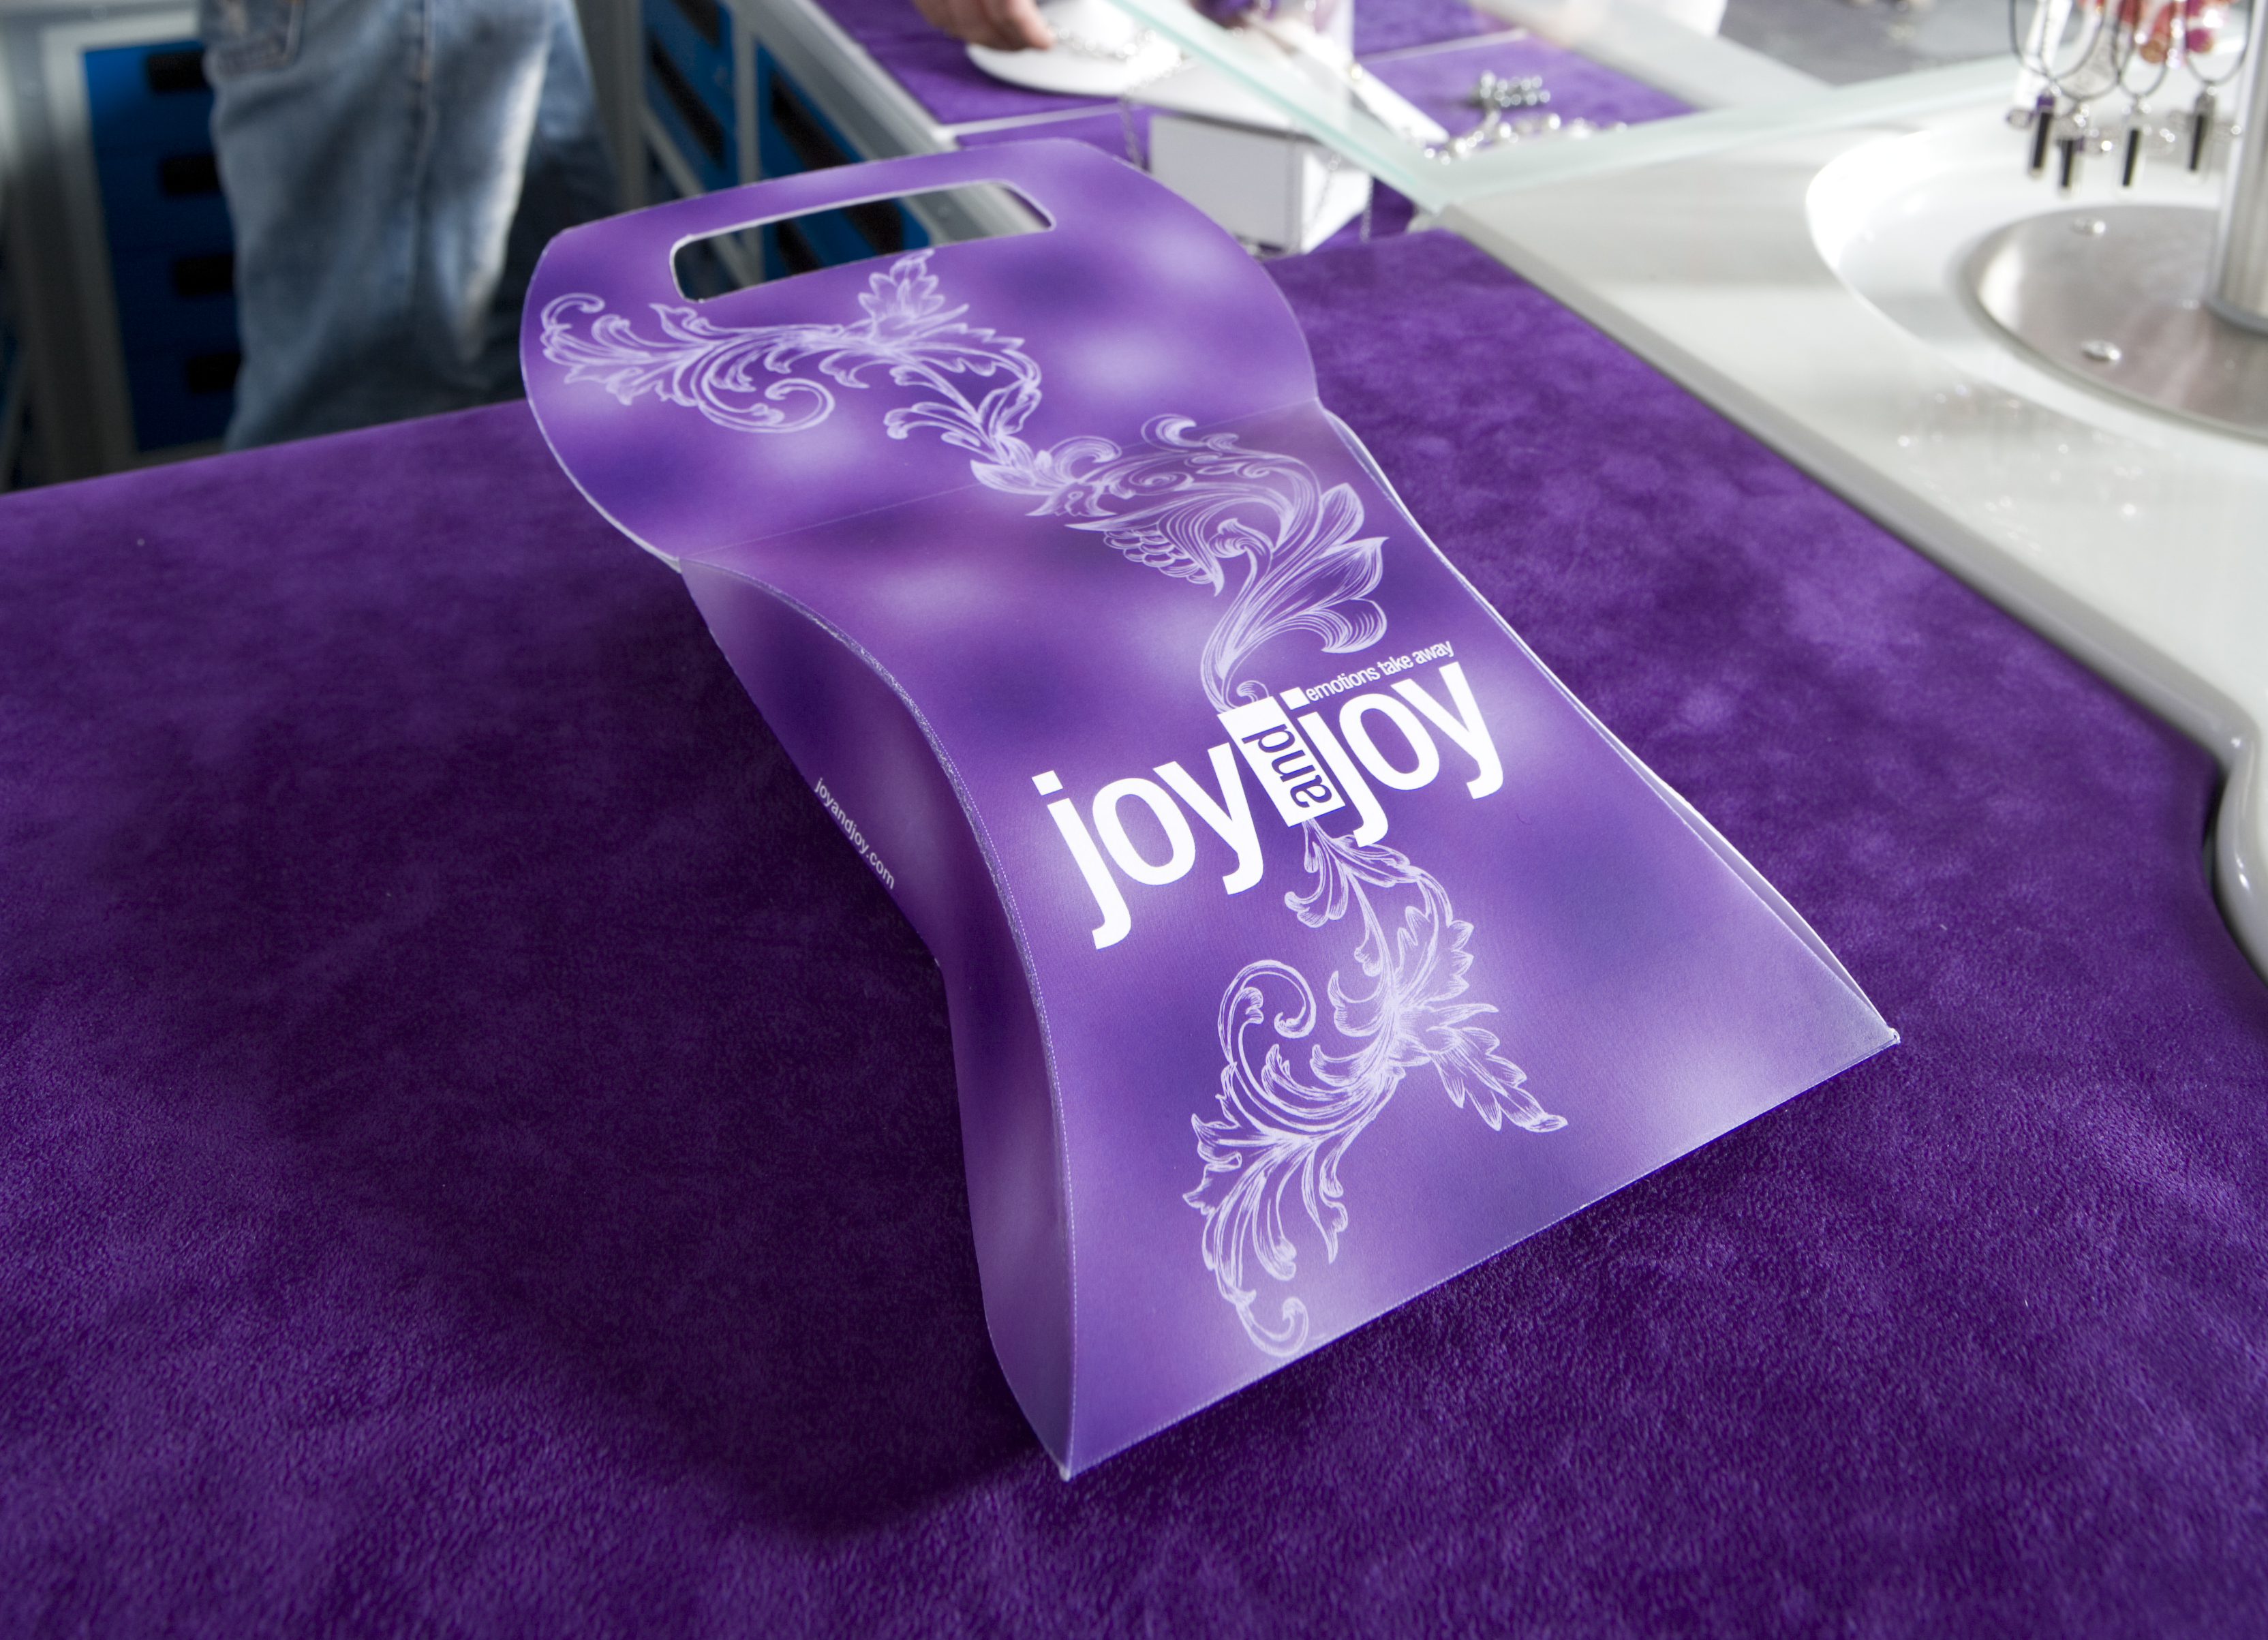 visual merchandising, Shopper Joy&Joy